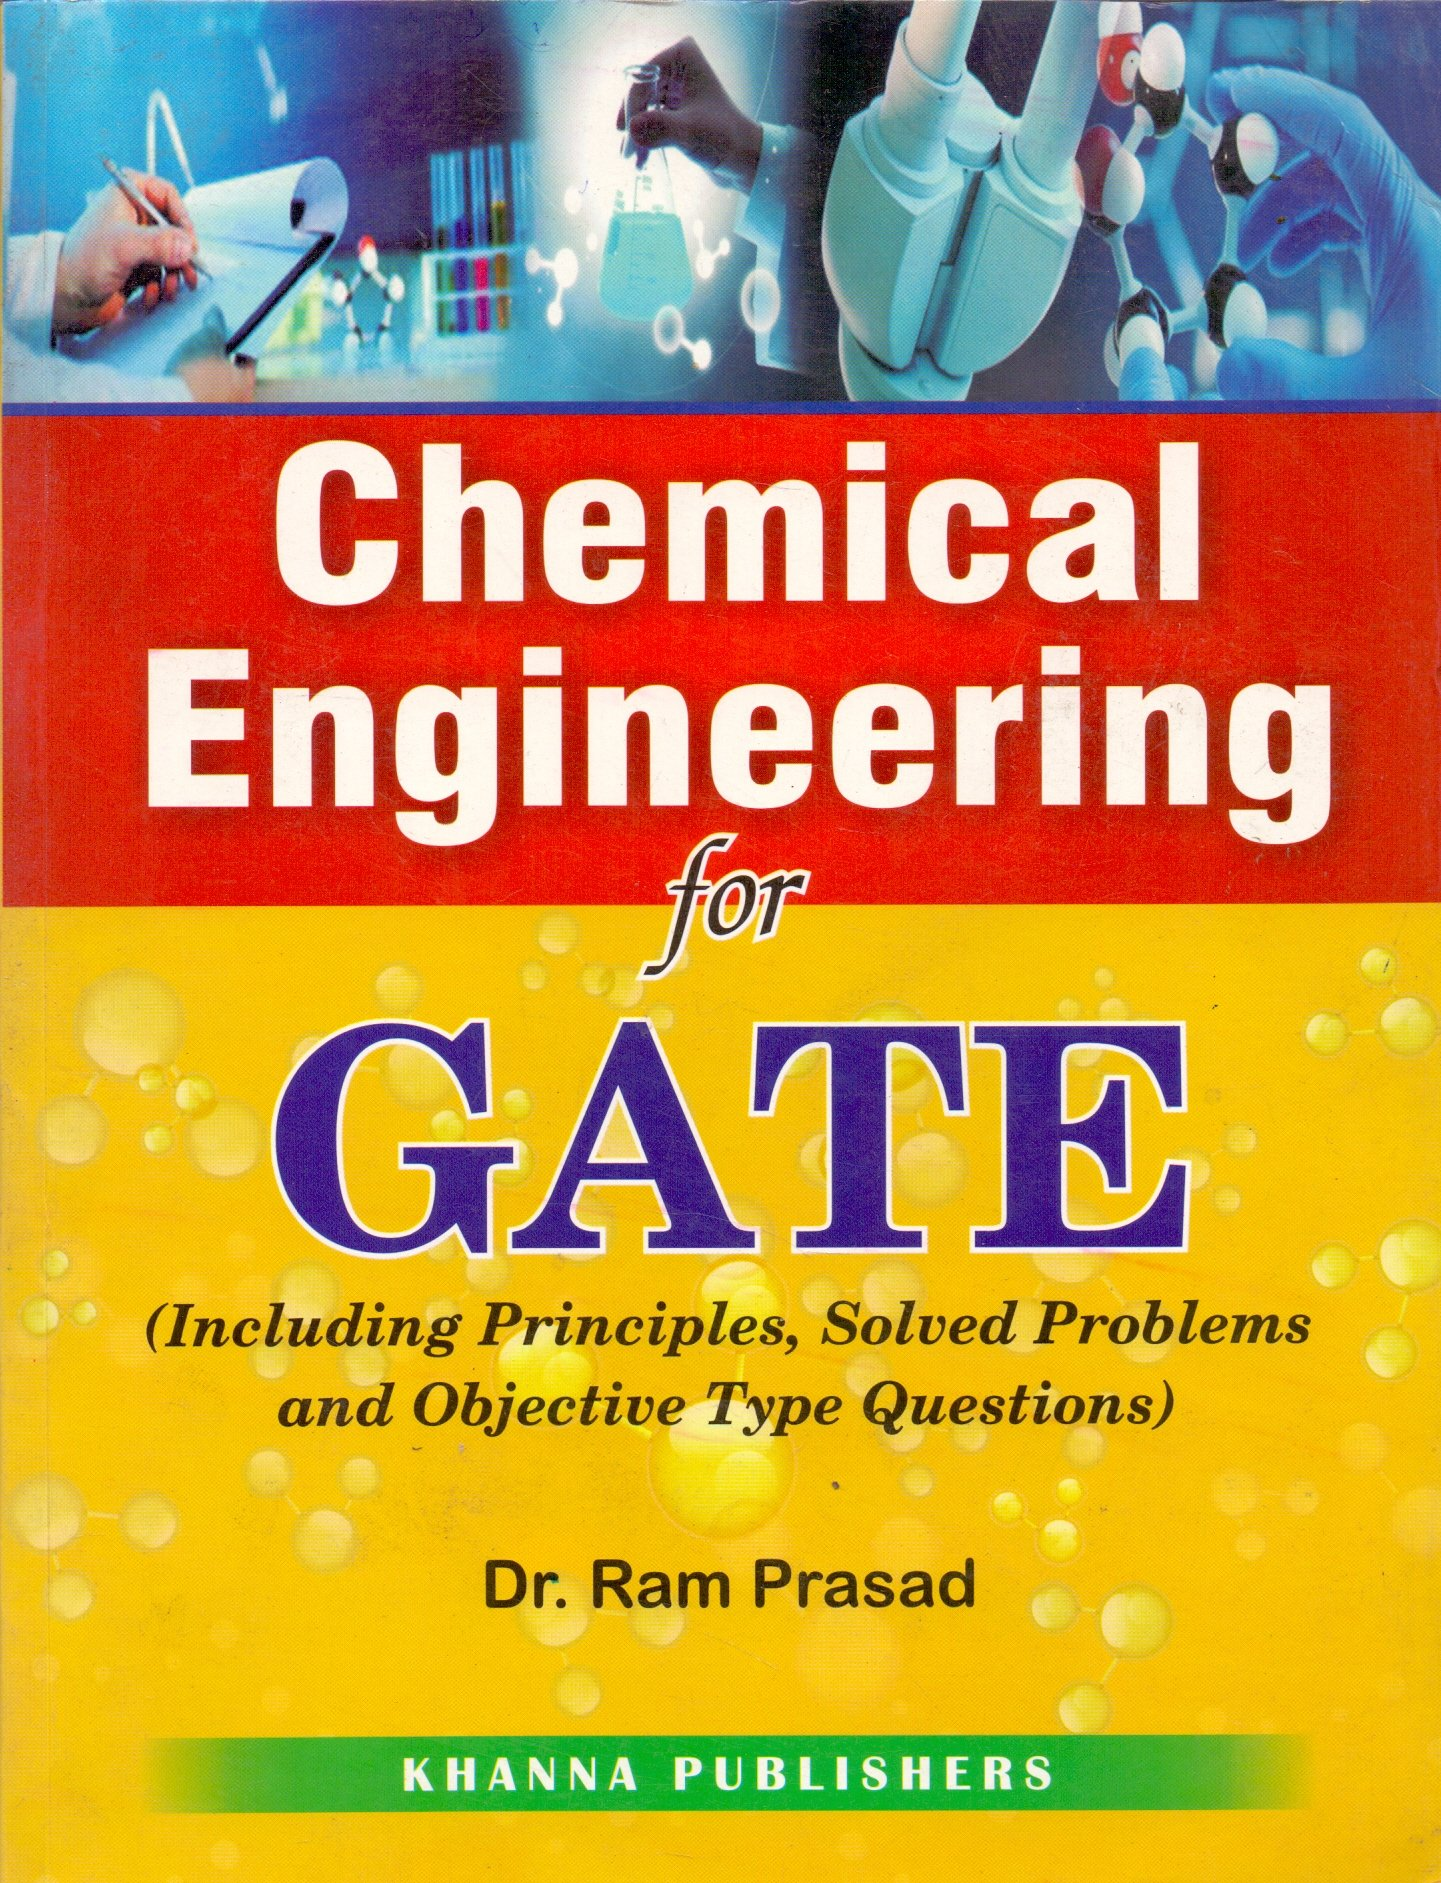 How to write a literature review chemical engineering